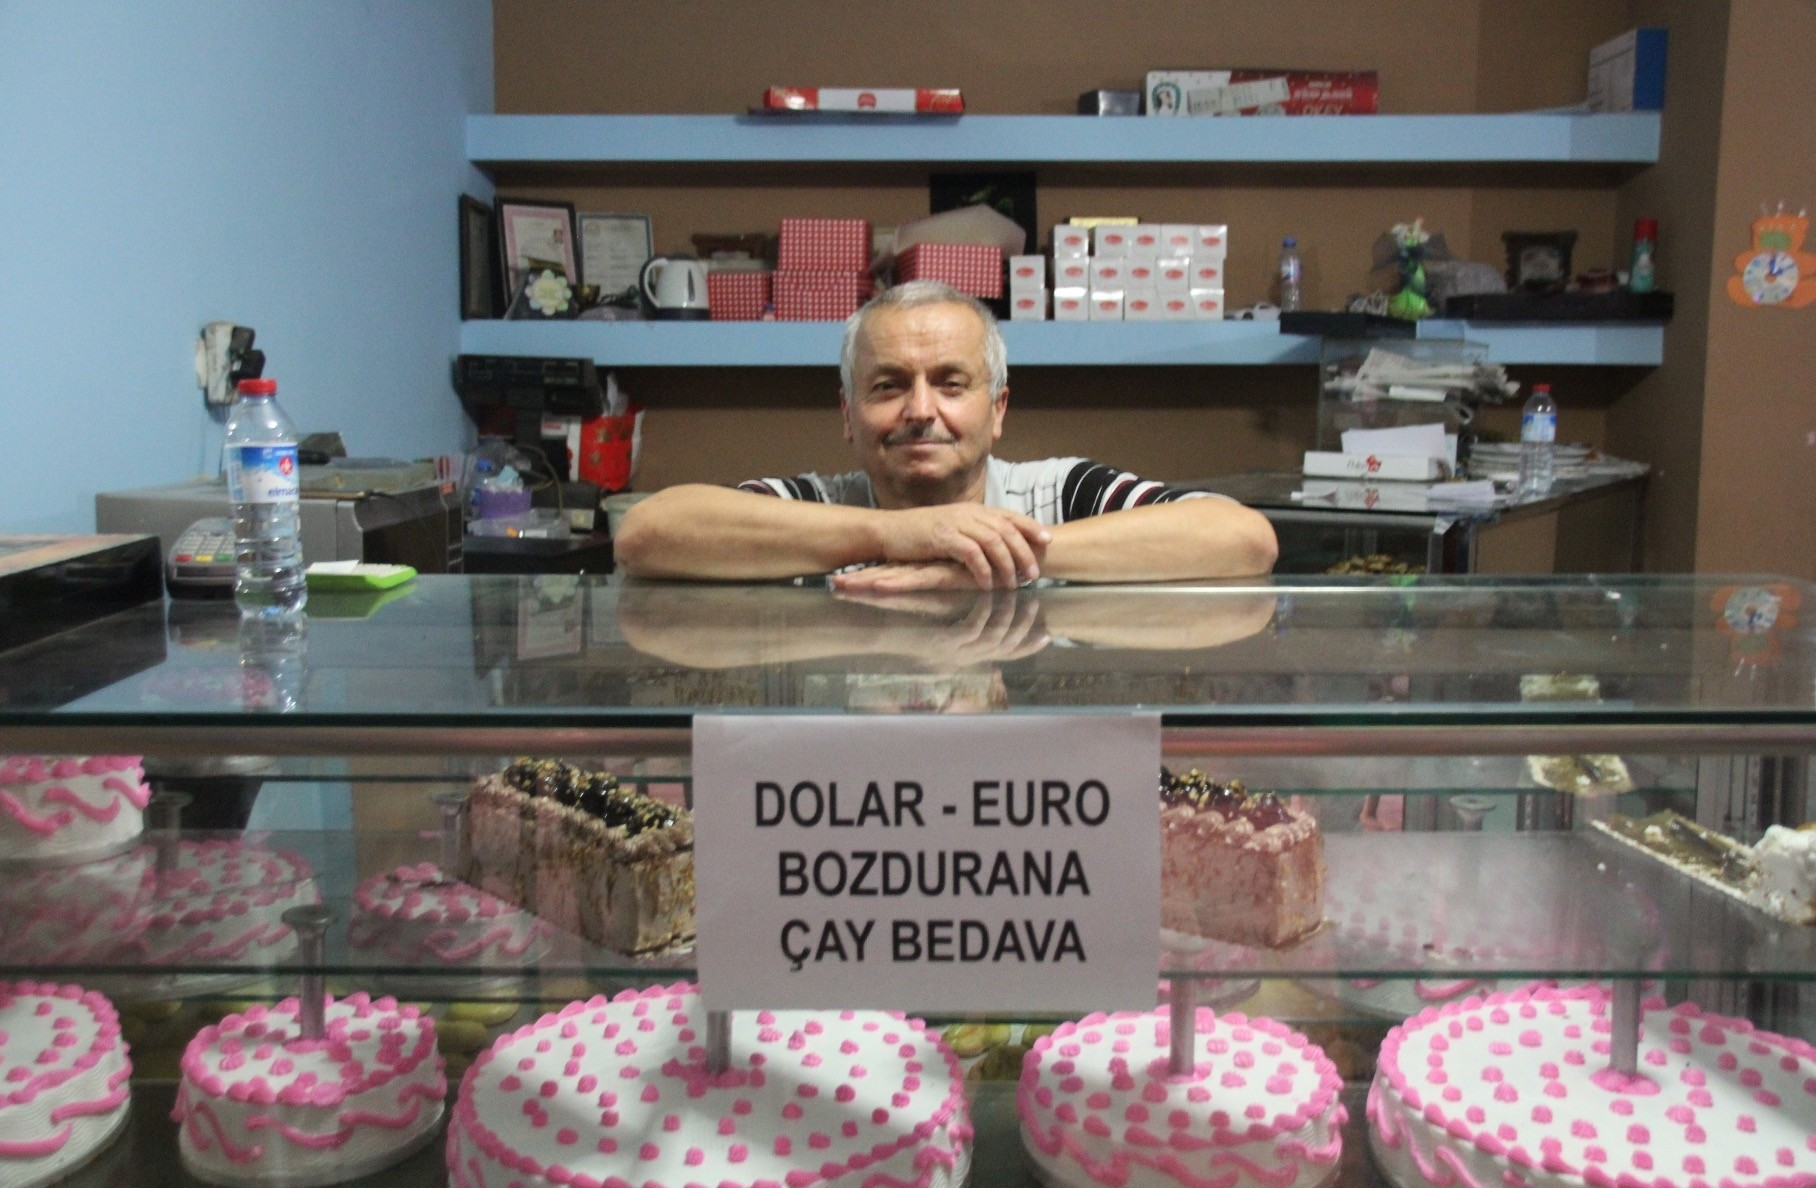 Baker Burhan Uu011furlu from Du00fczce is offering customers free tea if they sell their dollars or euros while Hasan u0130zol from Gaziantep (below) is burning single dollar bills in protest.